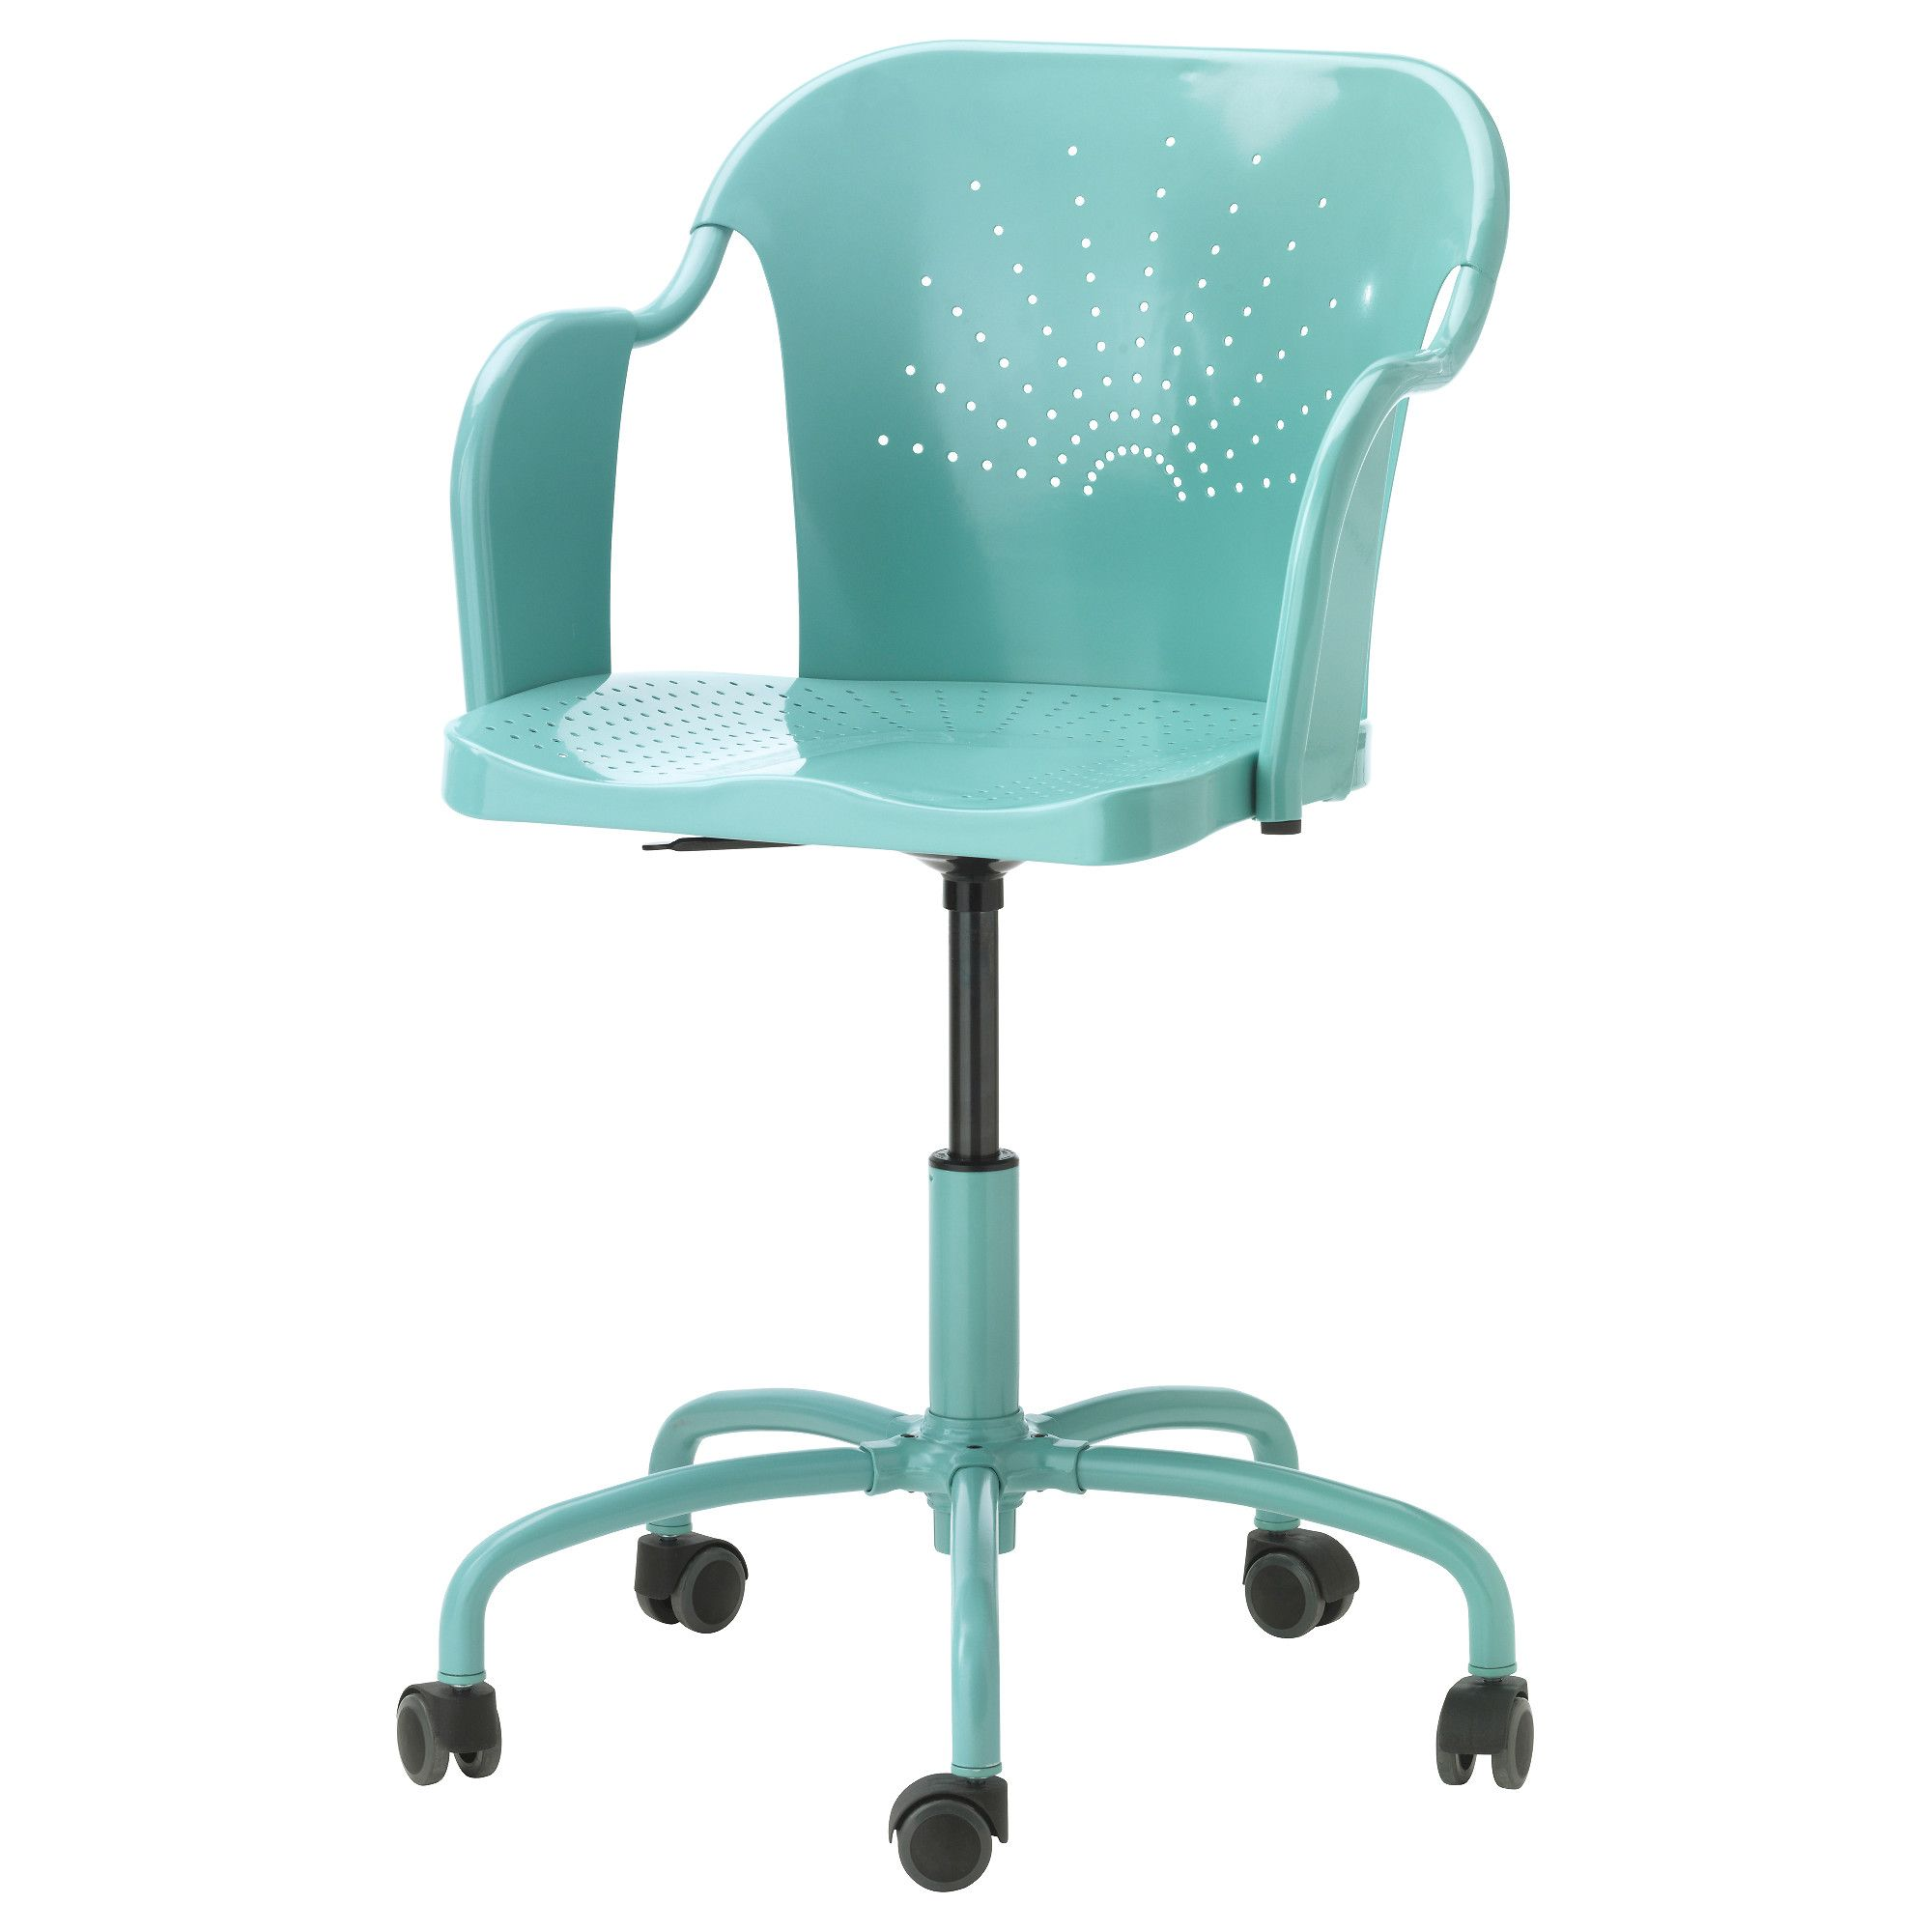 Ikea Arbeitsstuhl Ikea Roberget Swivel Chair Turquoise You Sit Comfortably